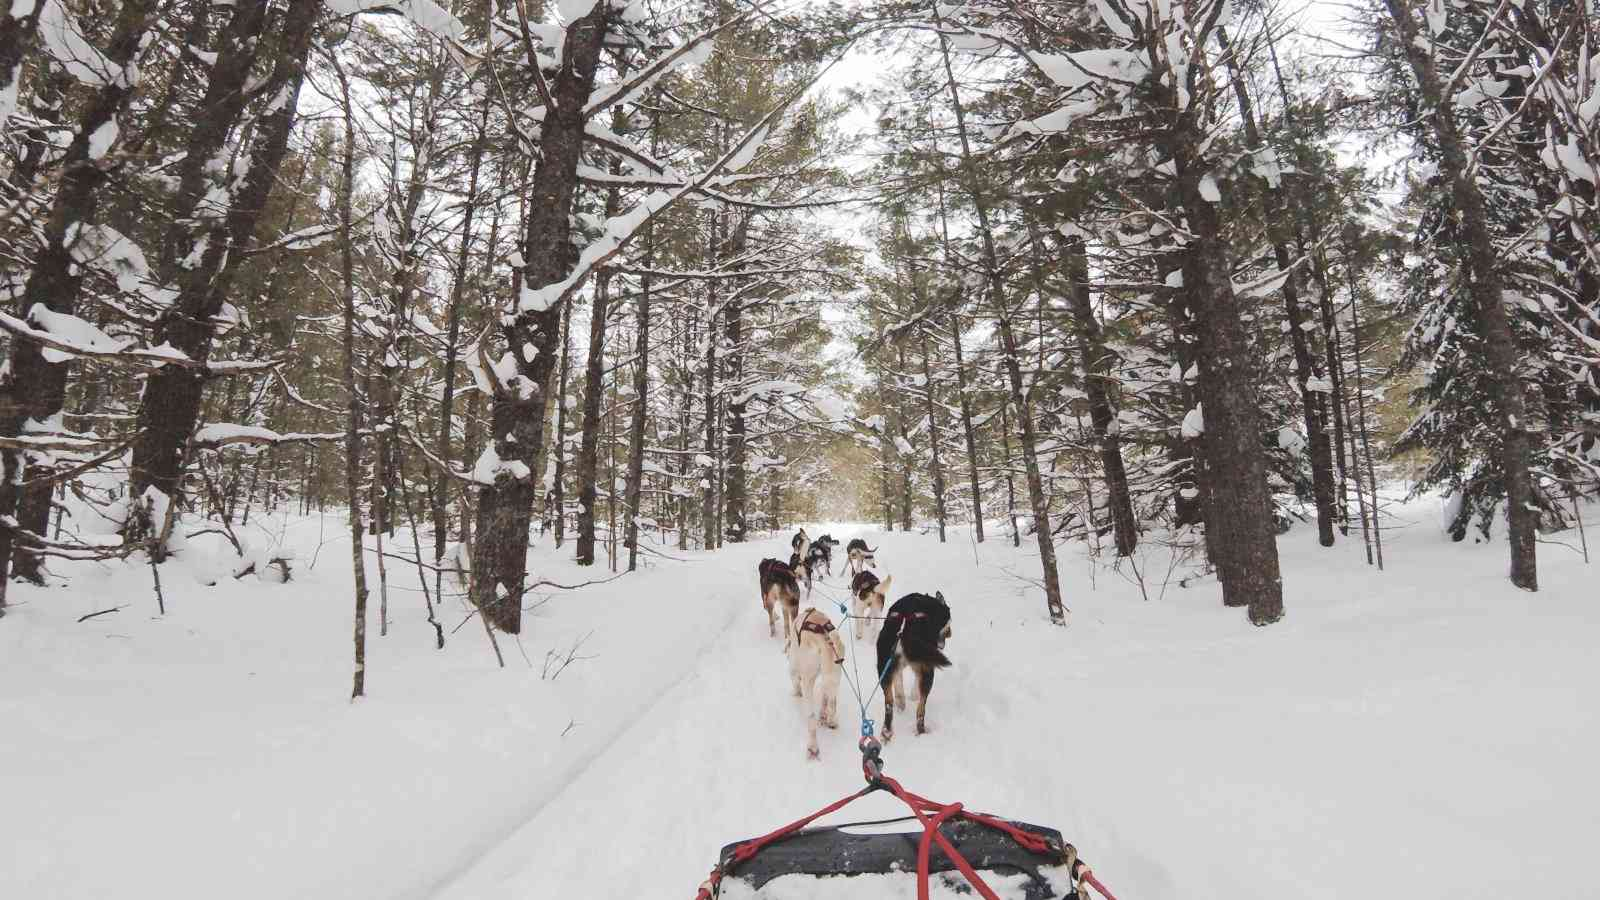 Going dog-sledding with cute huskies is just one of MANY fun things you will get to do during the Elevation Tremblant Gay Ski Week